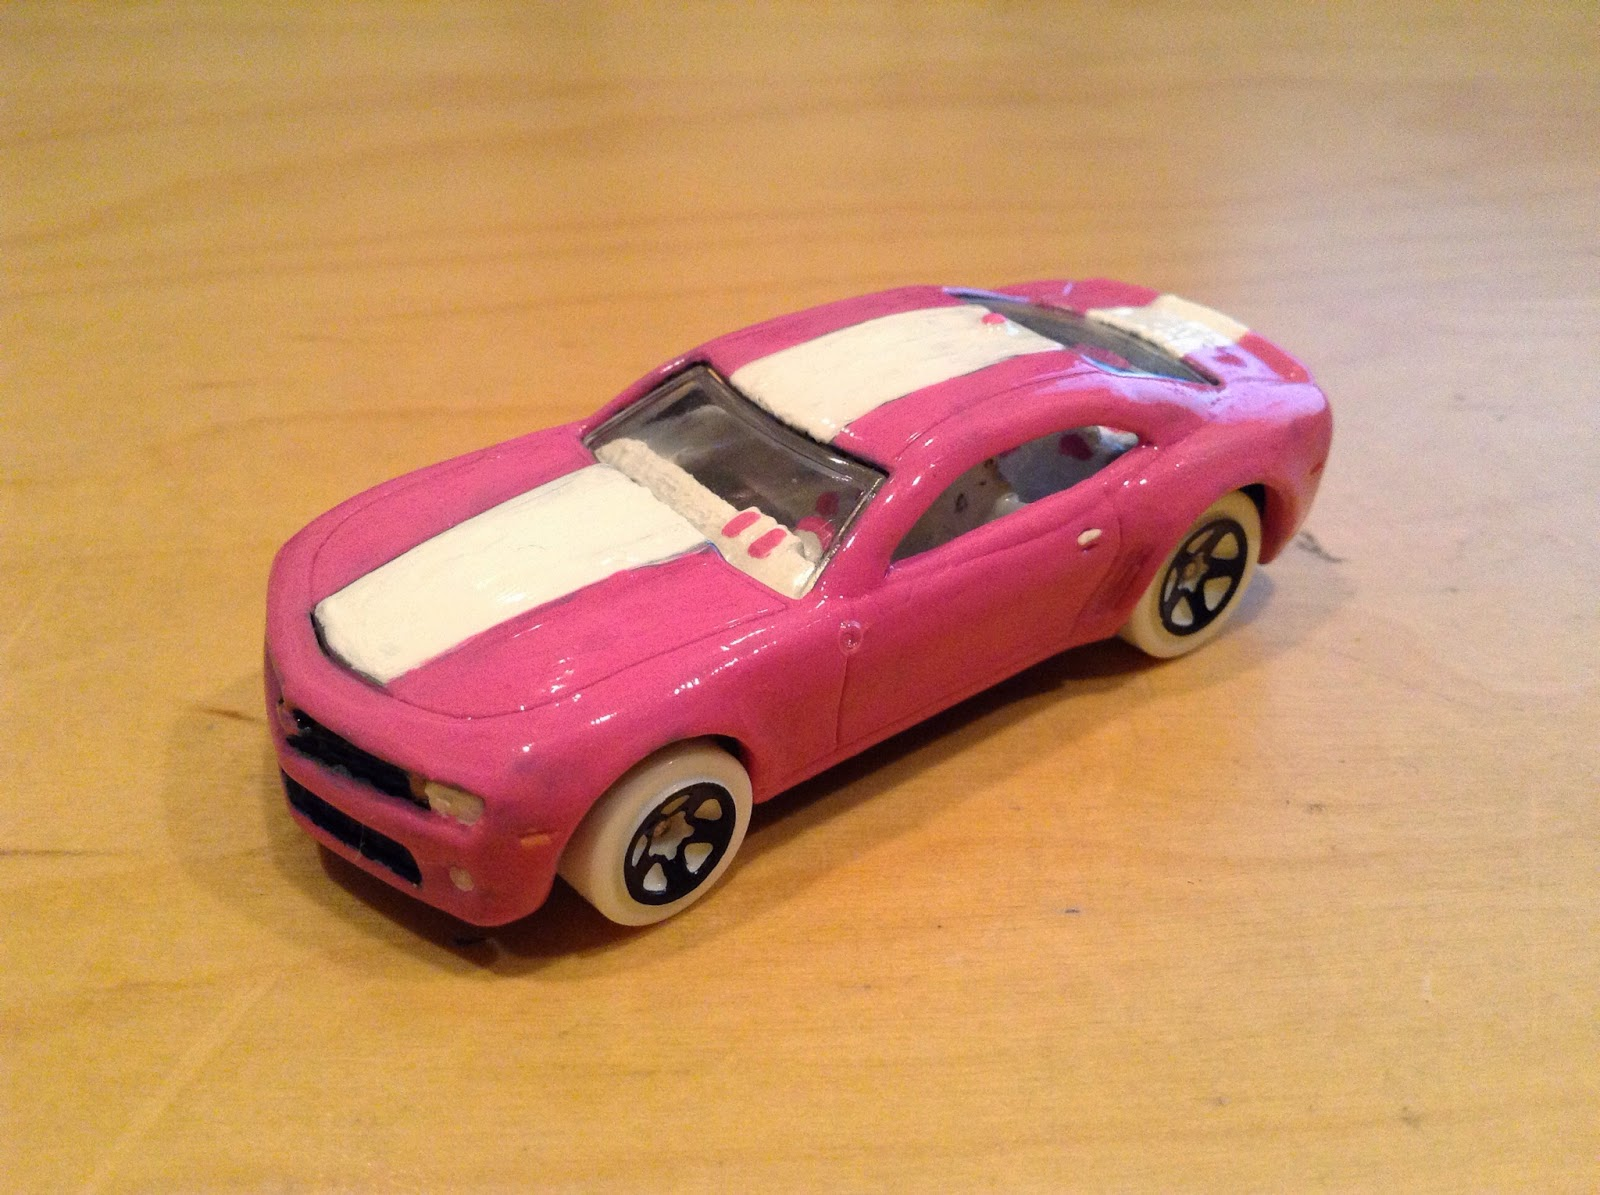 And Swing Out The Wheels For Some White Ones Overall It Could Be Better Of Course But I Still Like My New Pink Camaro Was Fun To Customize